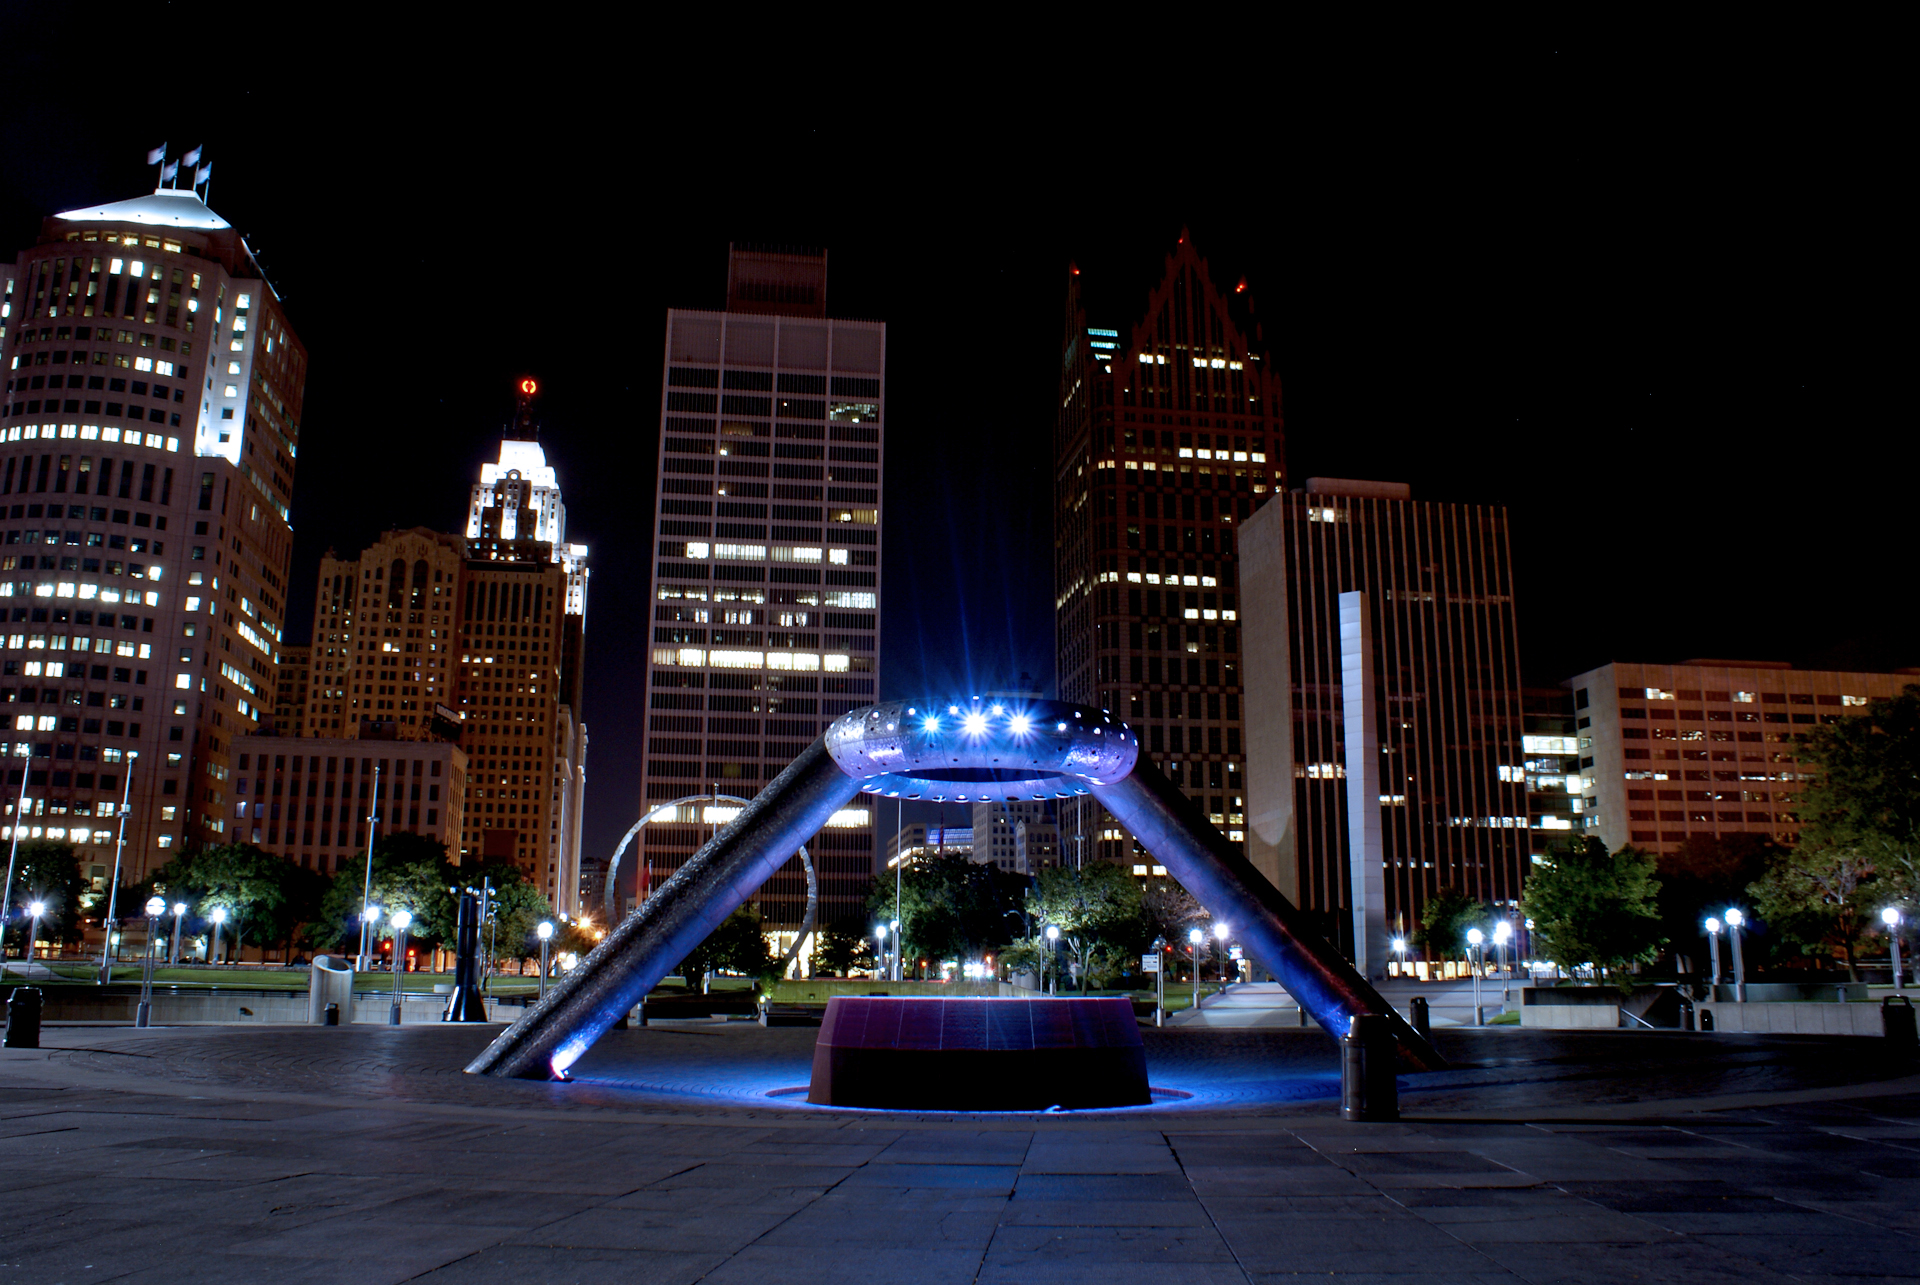 I spent many days and nights exploring Detroit while learning the skills of photography.